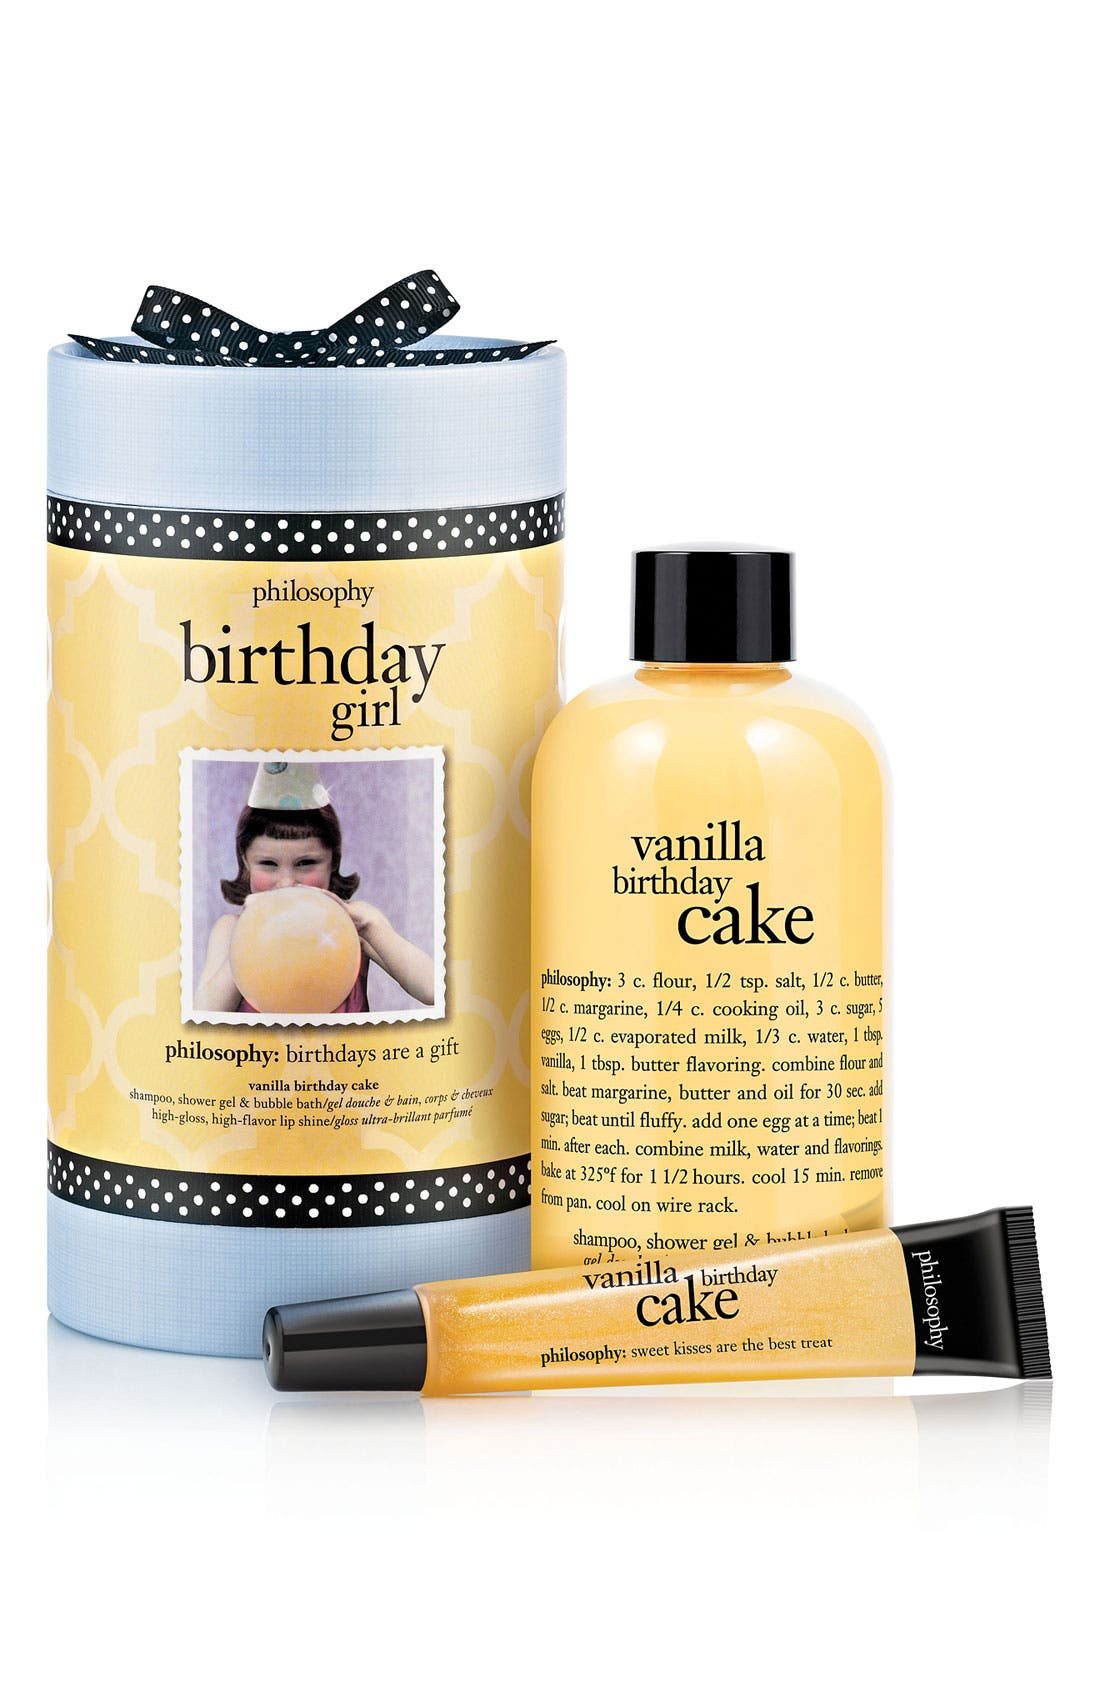 philosophy 'birthday girl' set